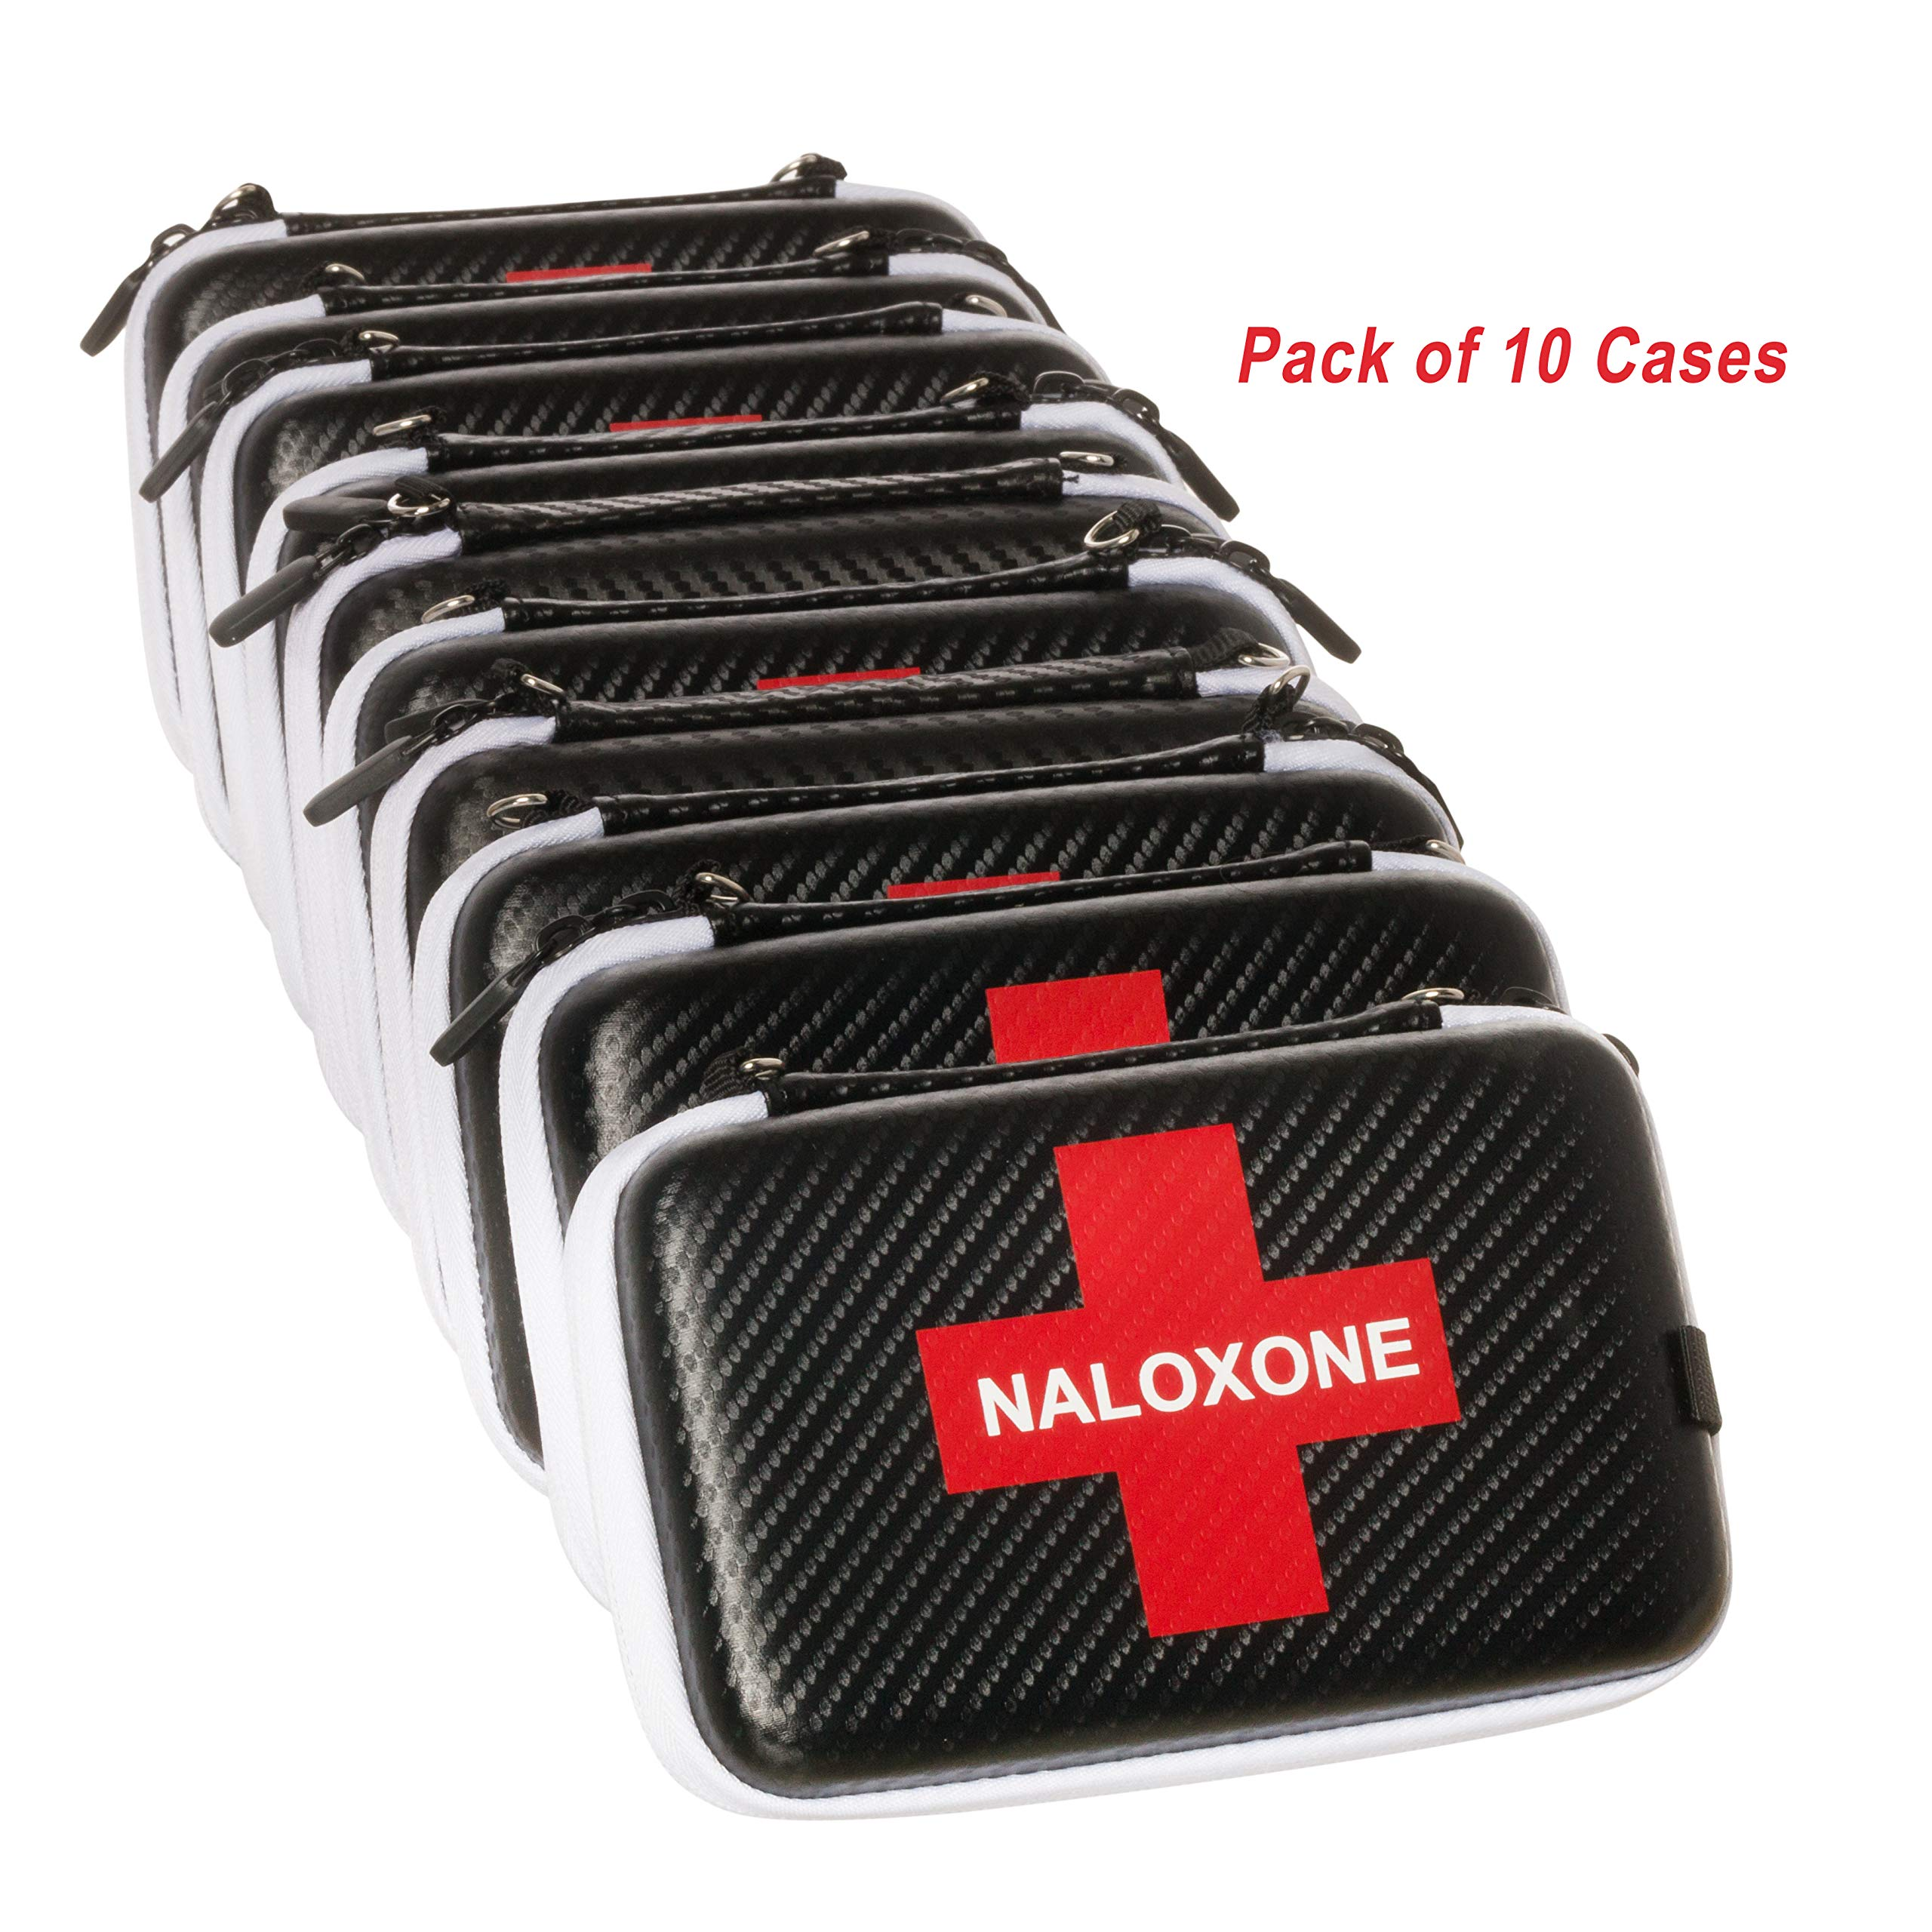 Naloxone Case for Opioid Overdose and Narcan Kits (Cases only) (7'' x 4.5'' x 2'') - 10 Pack